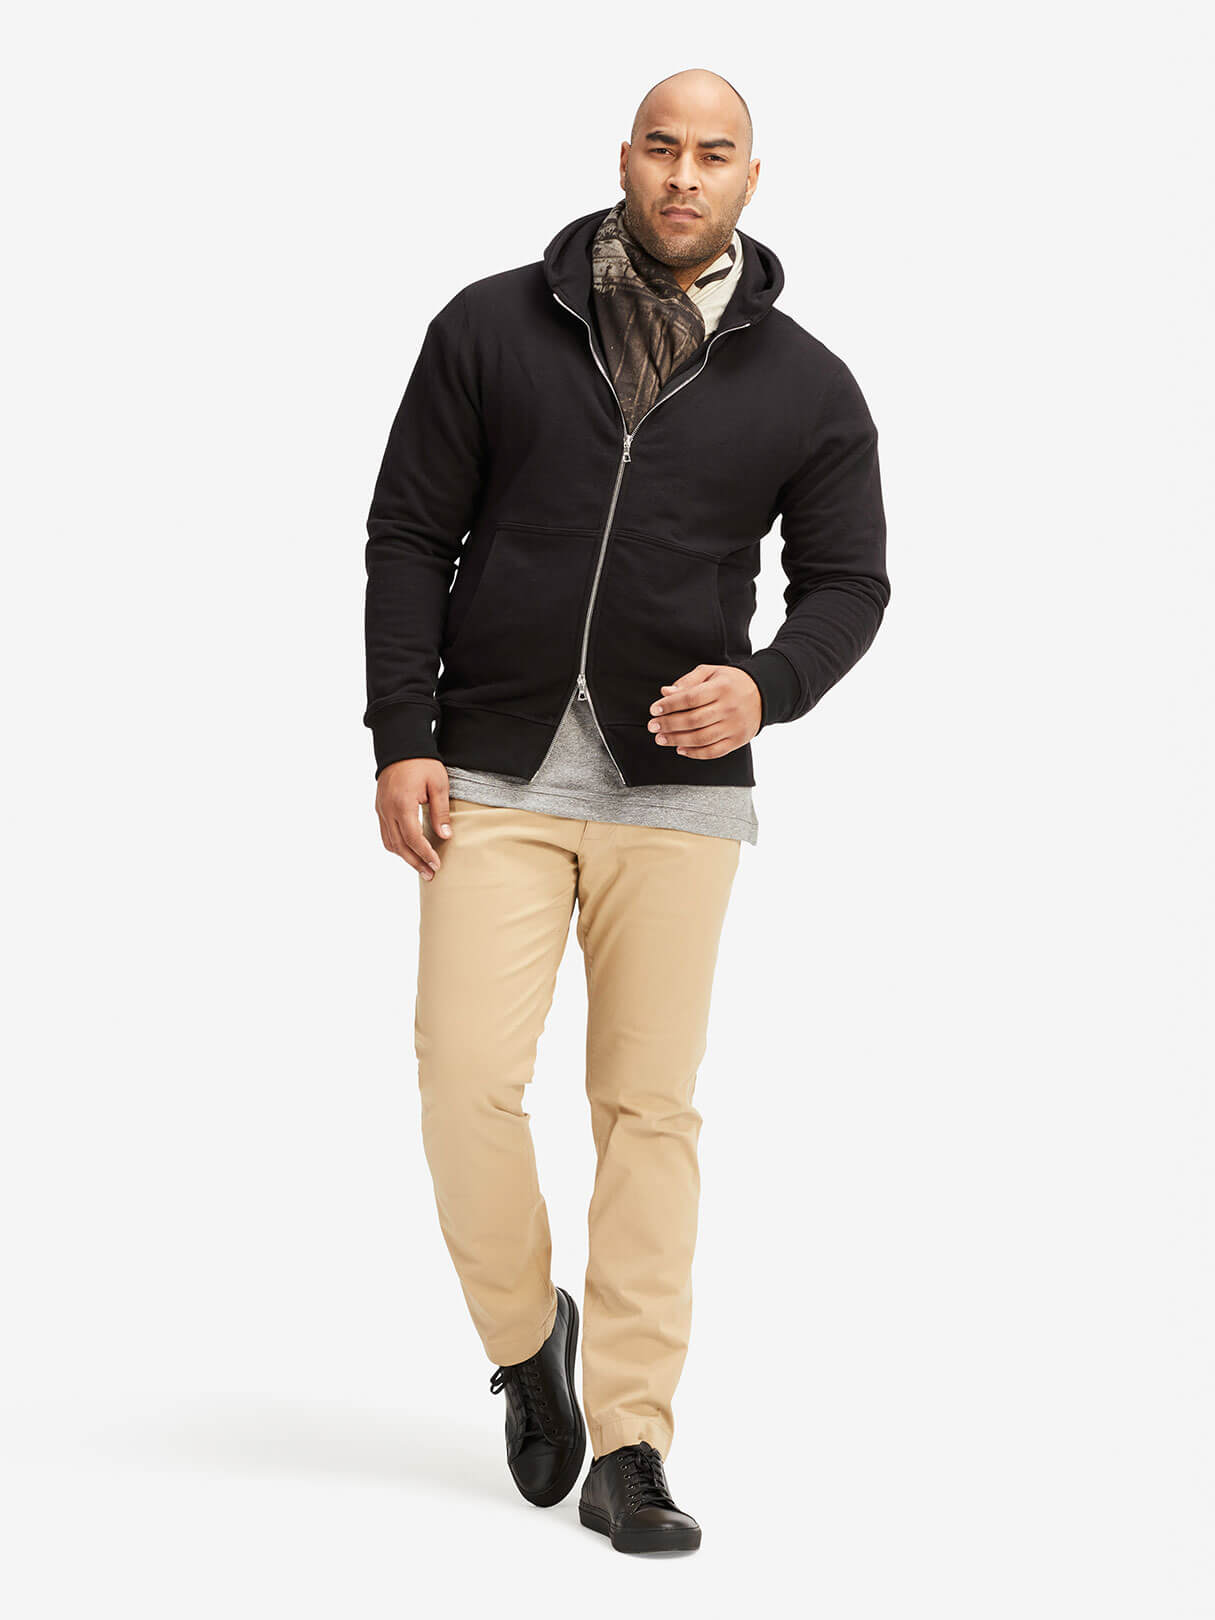 Dual Full-Zip Sweatshirt